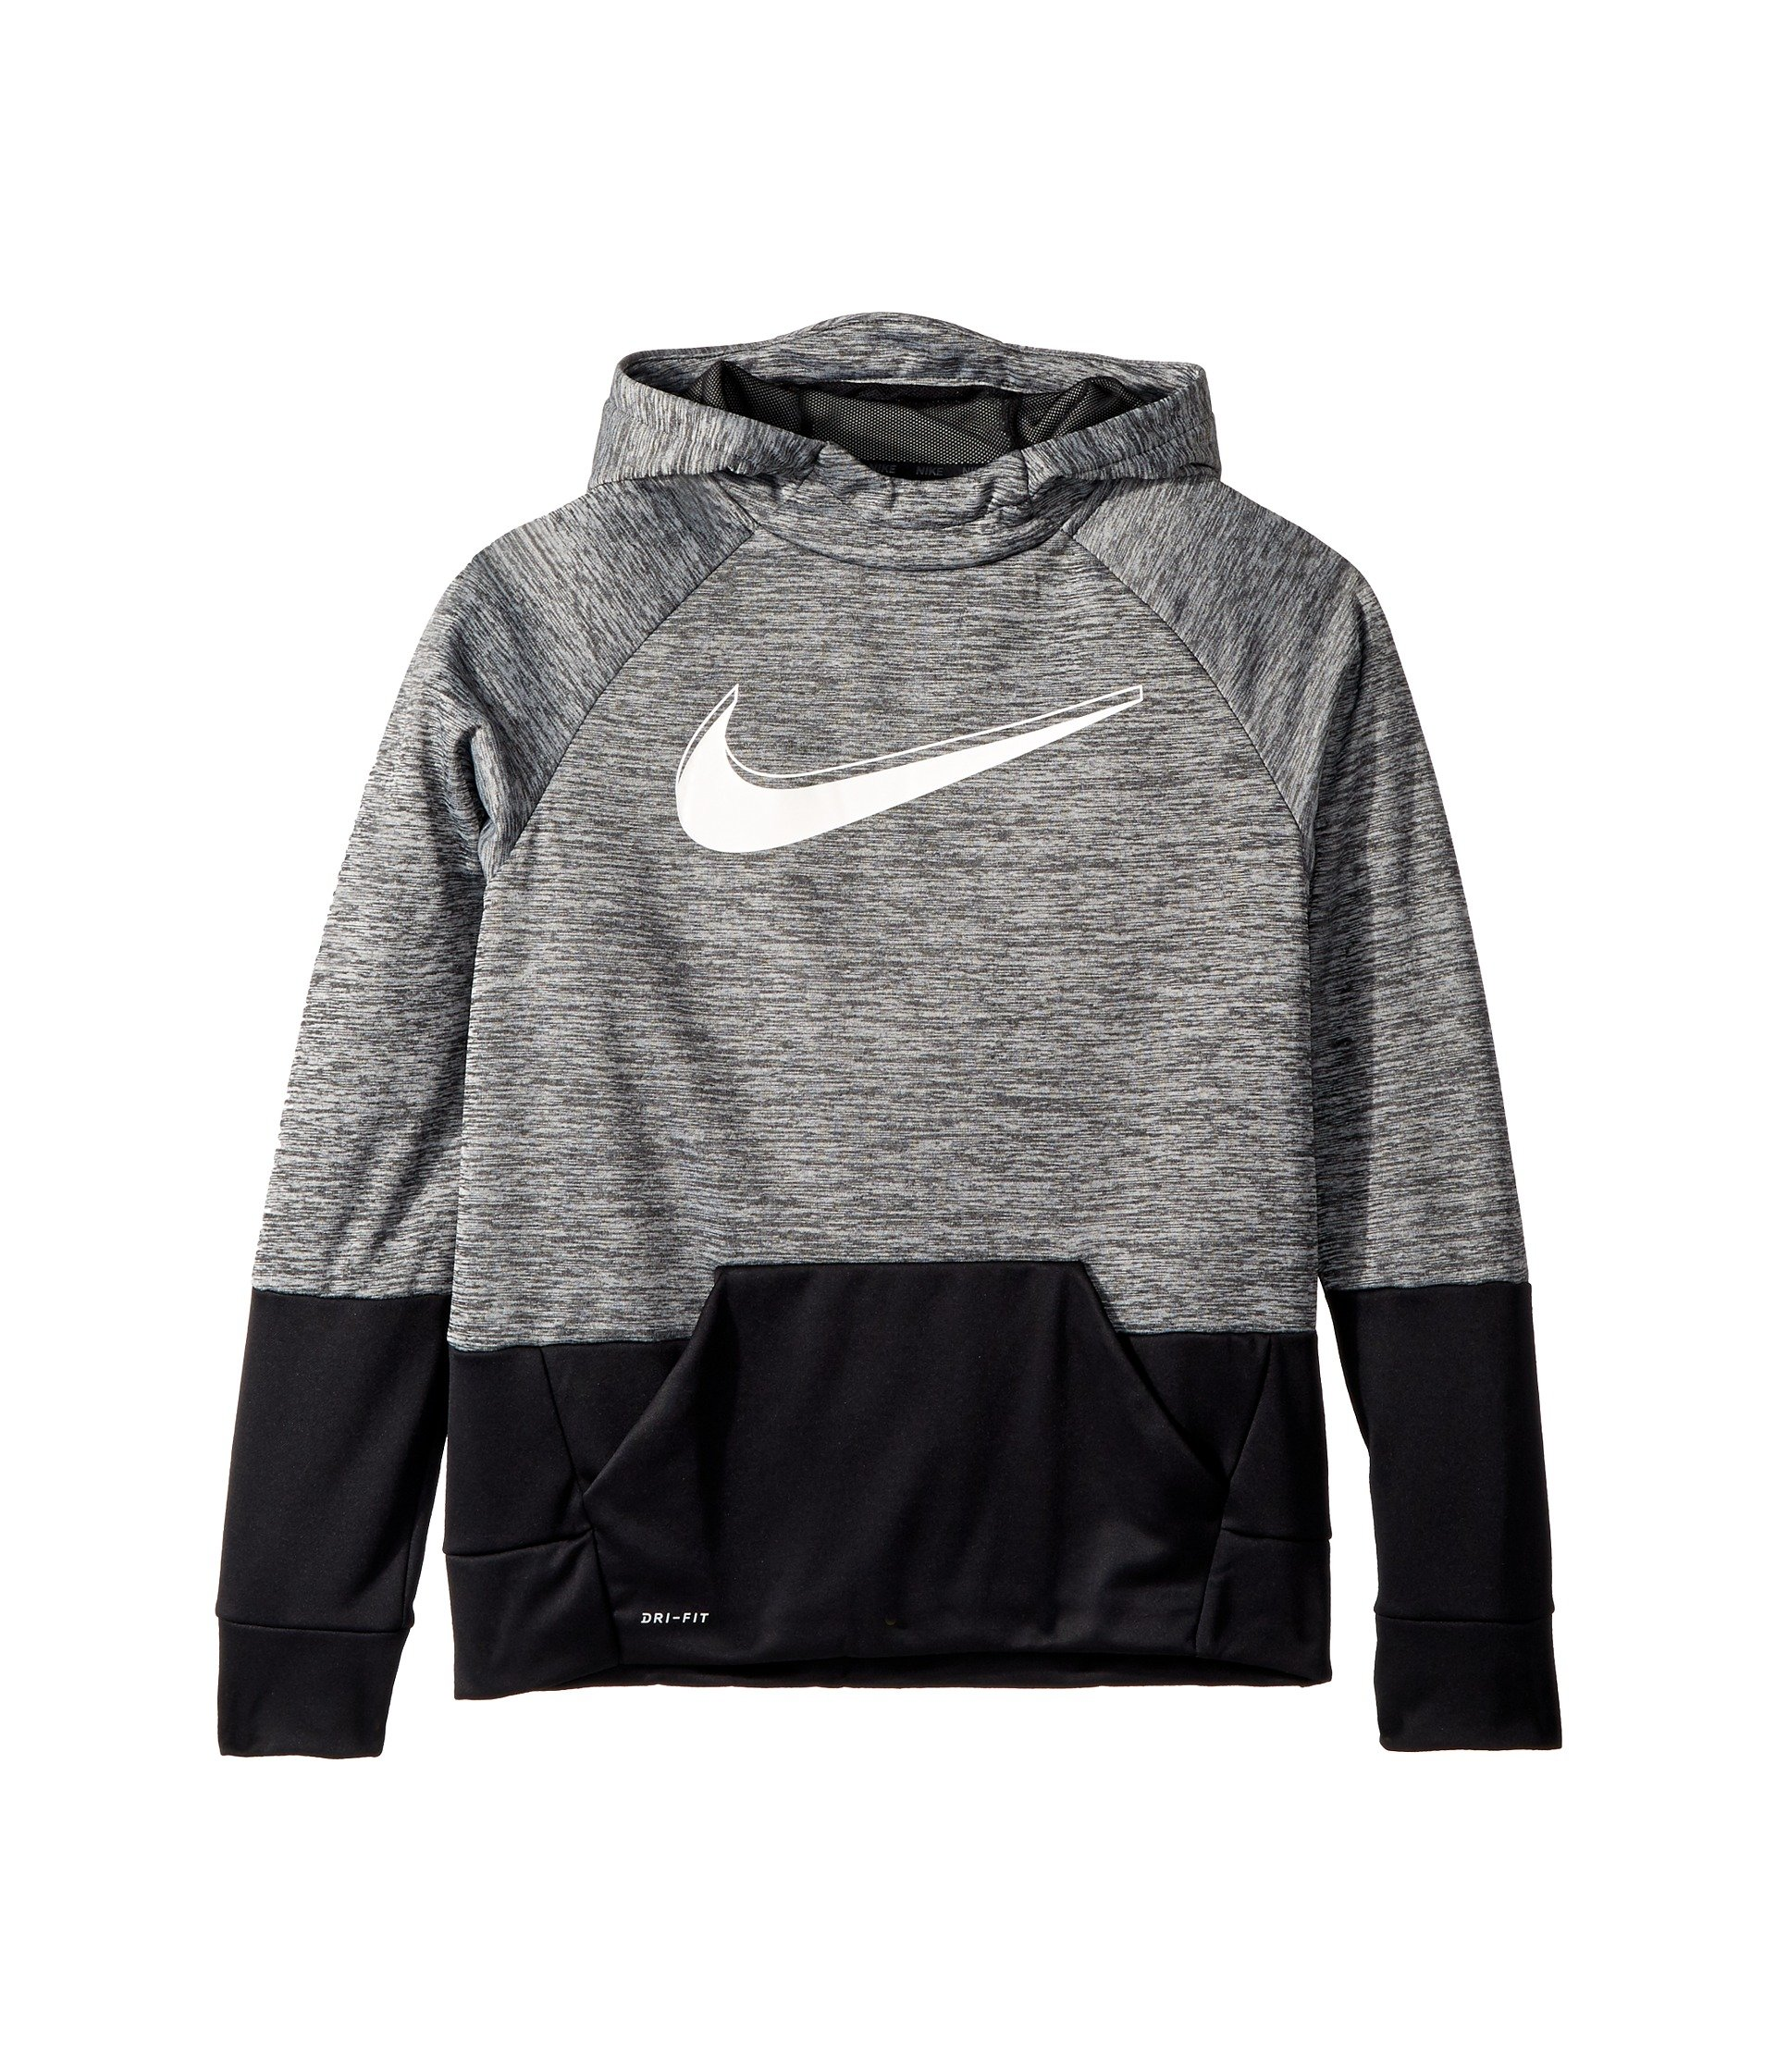 Nike Boy's Therma Heathered Graphic Hoodie (Black/Black, Small)